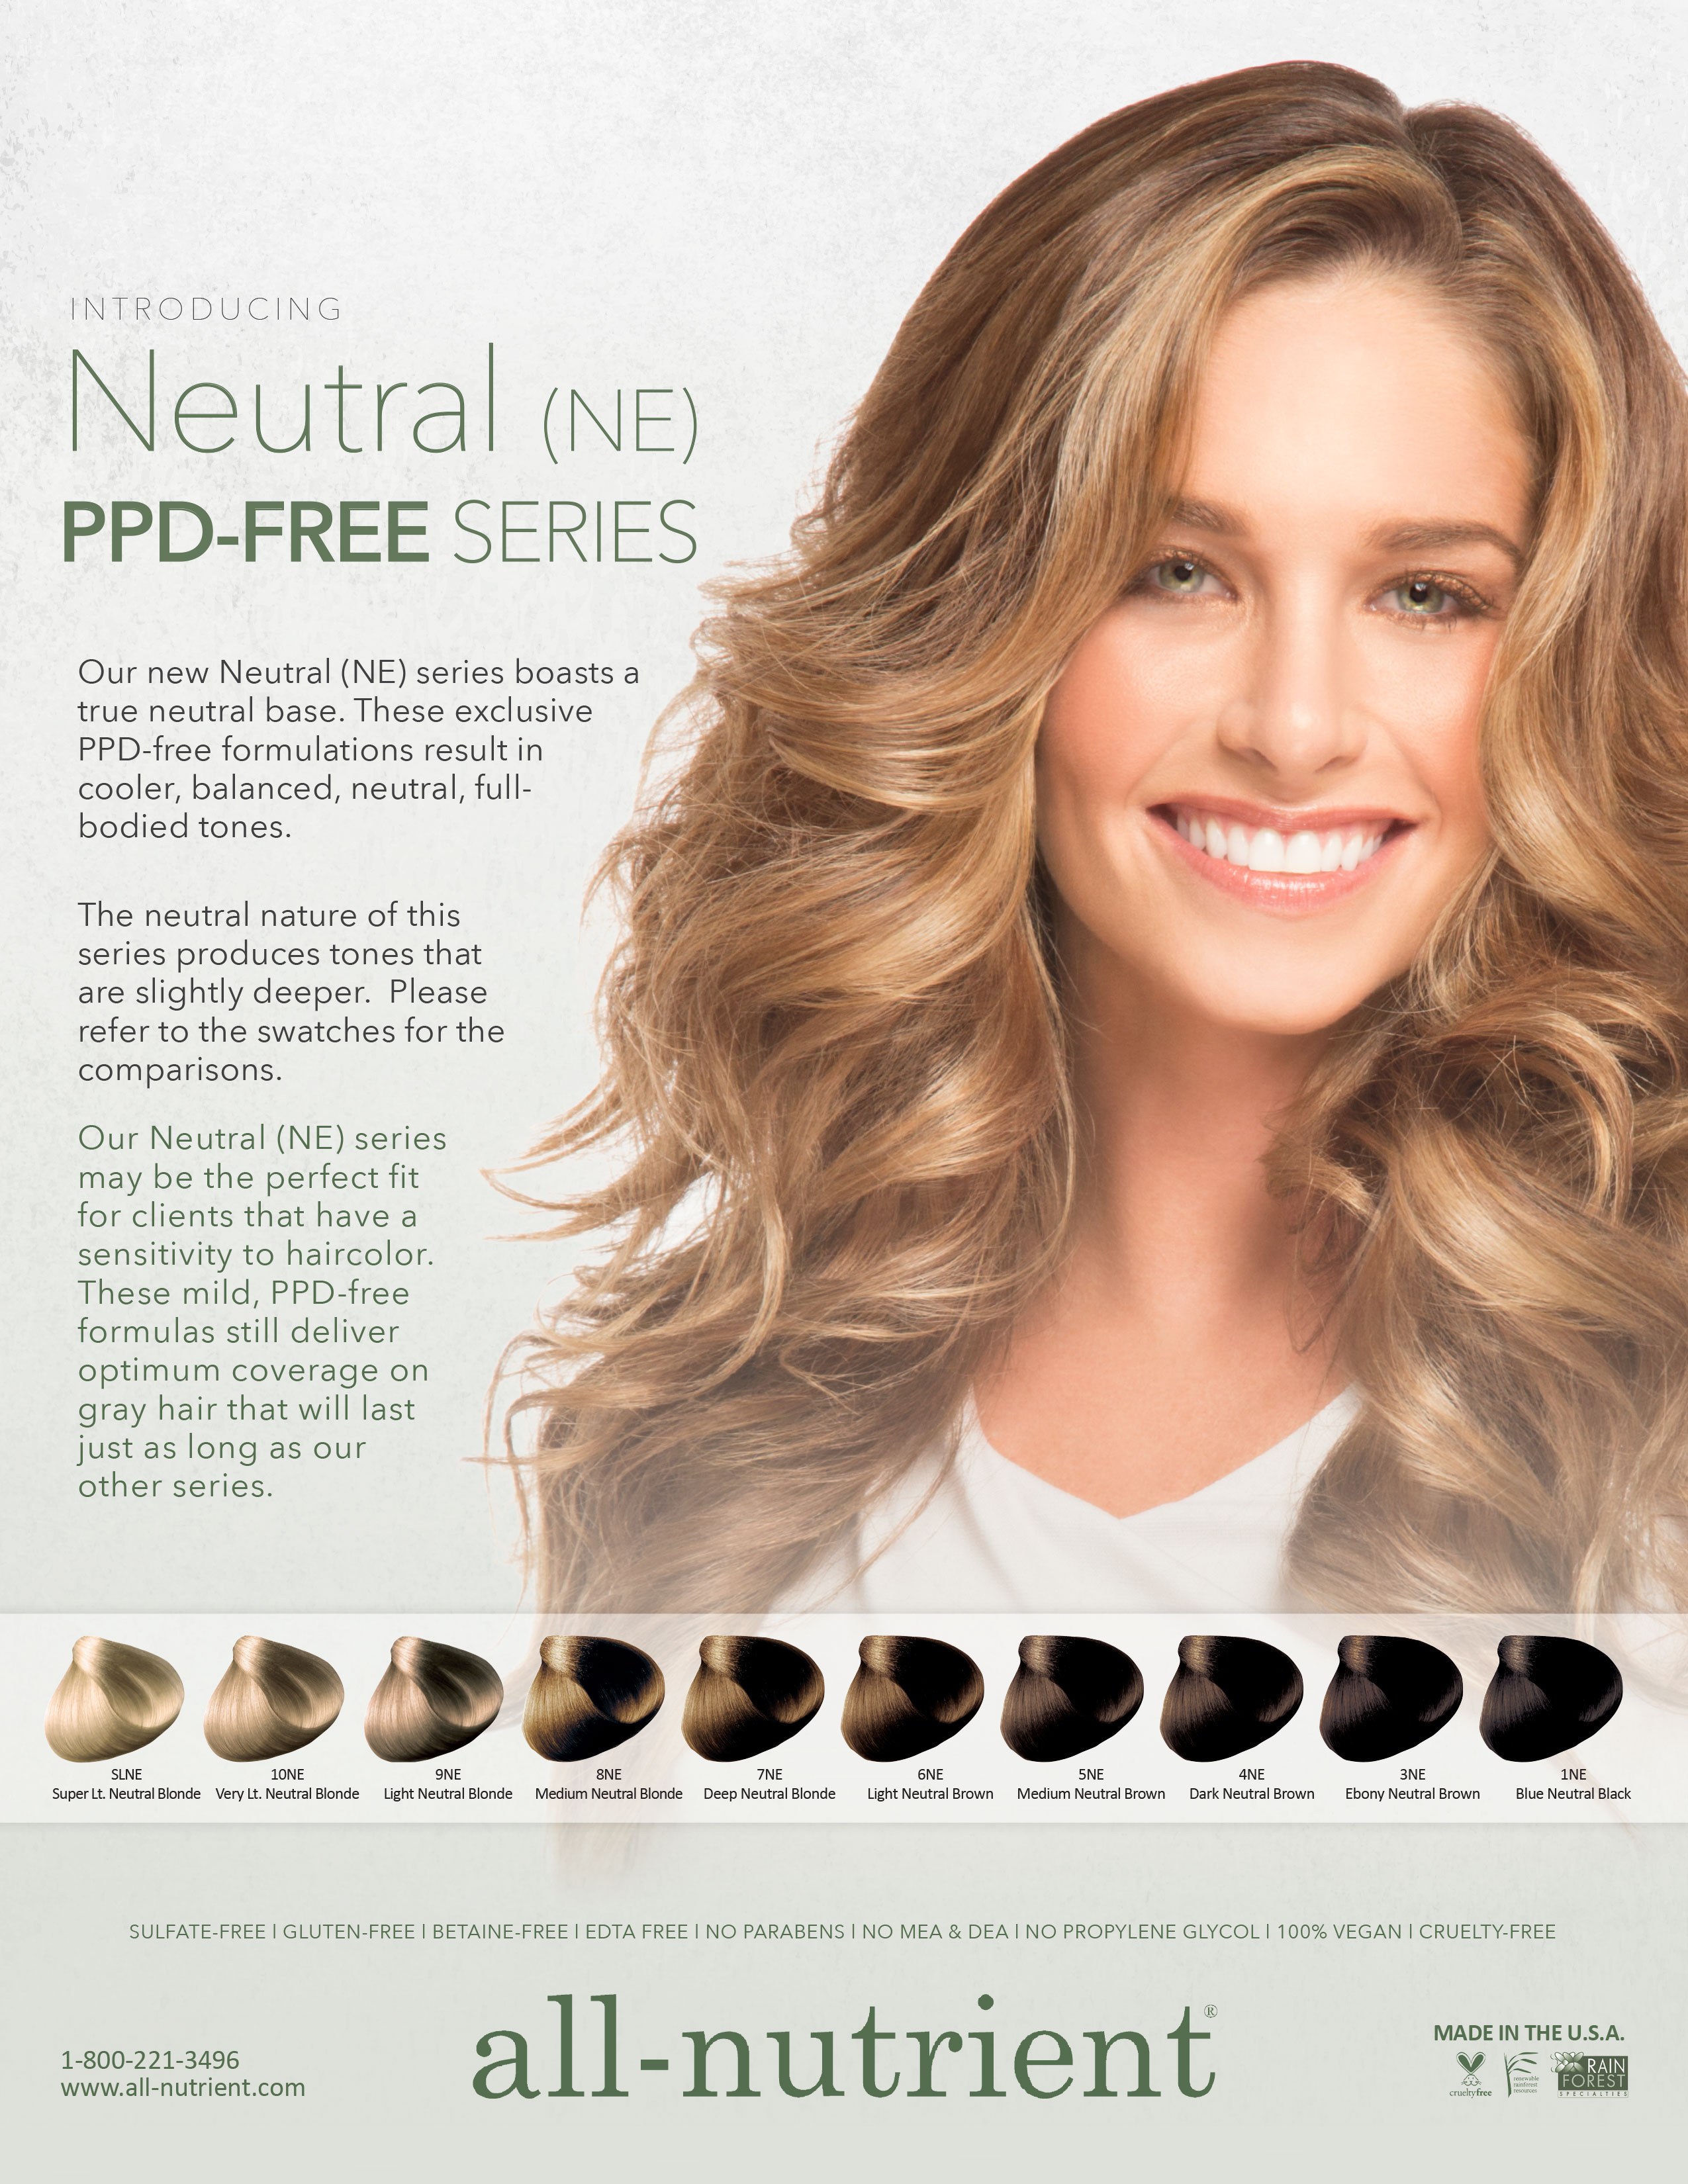 NEUTRAL-PPD-FREE-SERIES-1